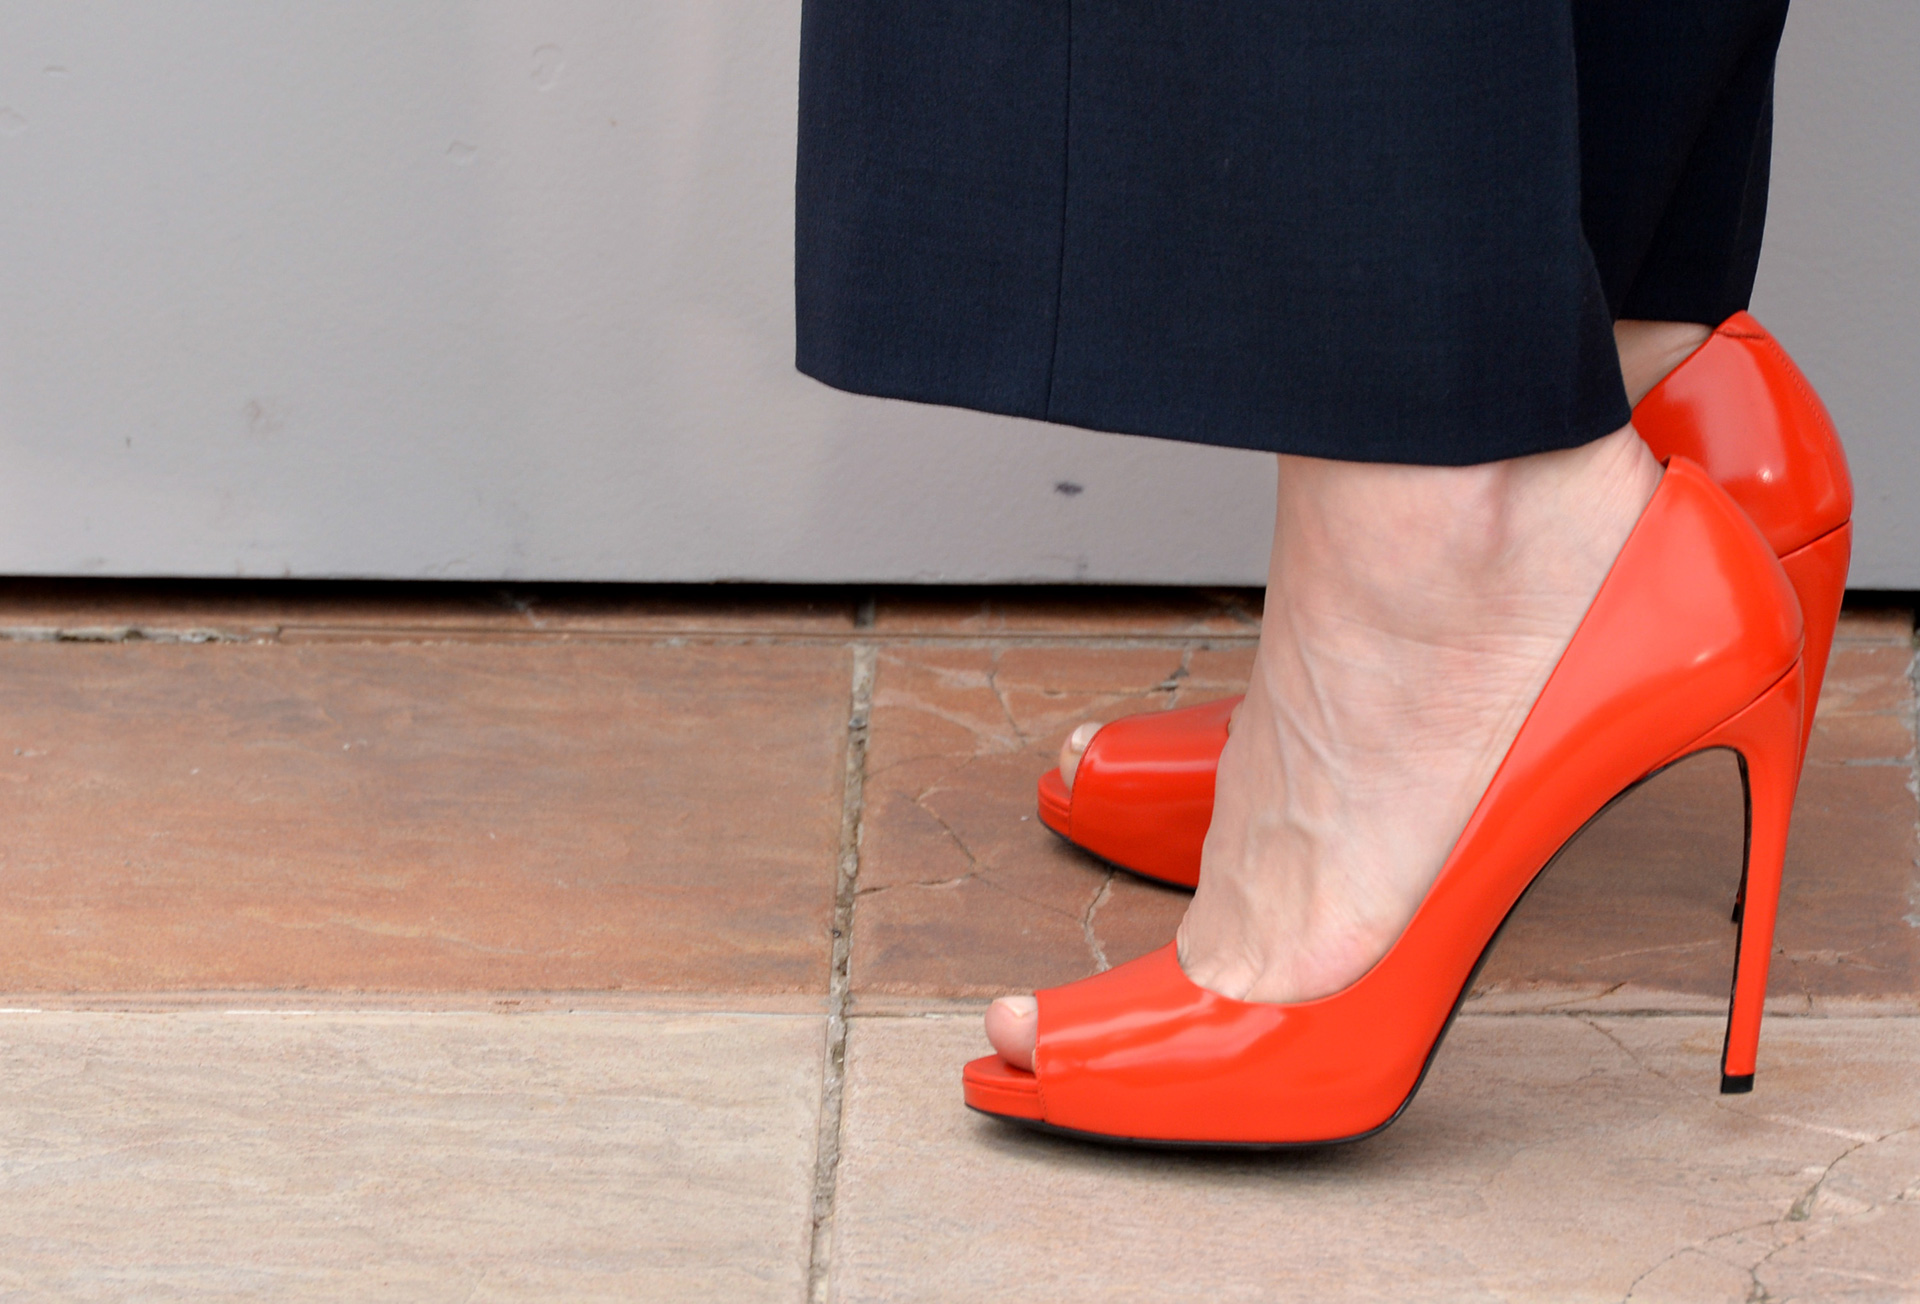 Cate Blanchett at the Cannes FIlm Festival wearing peep toe shoes